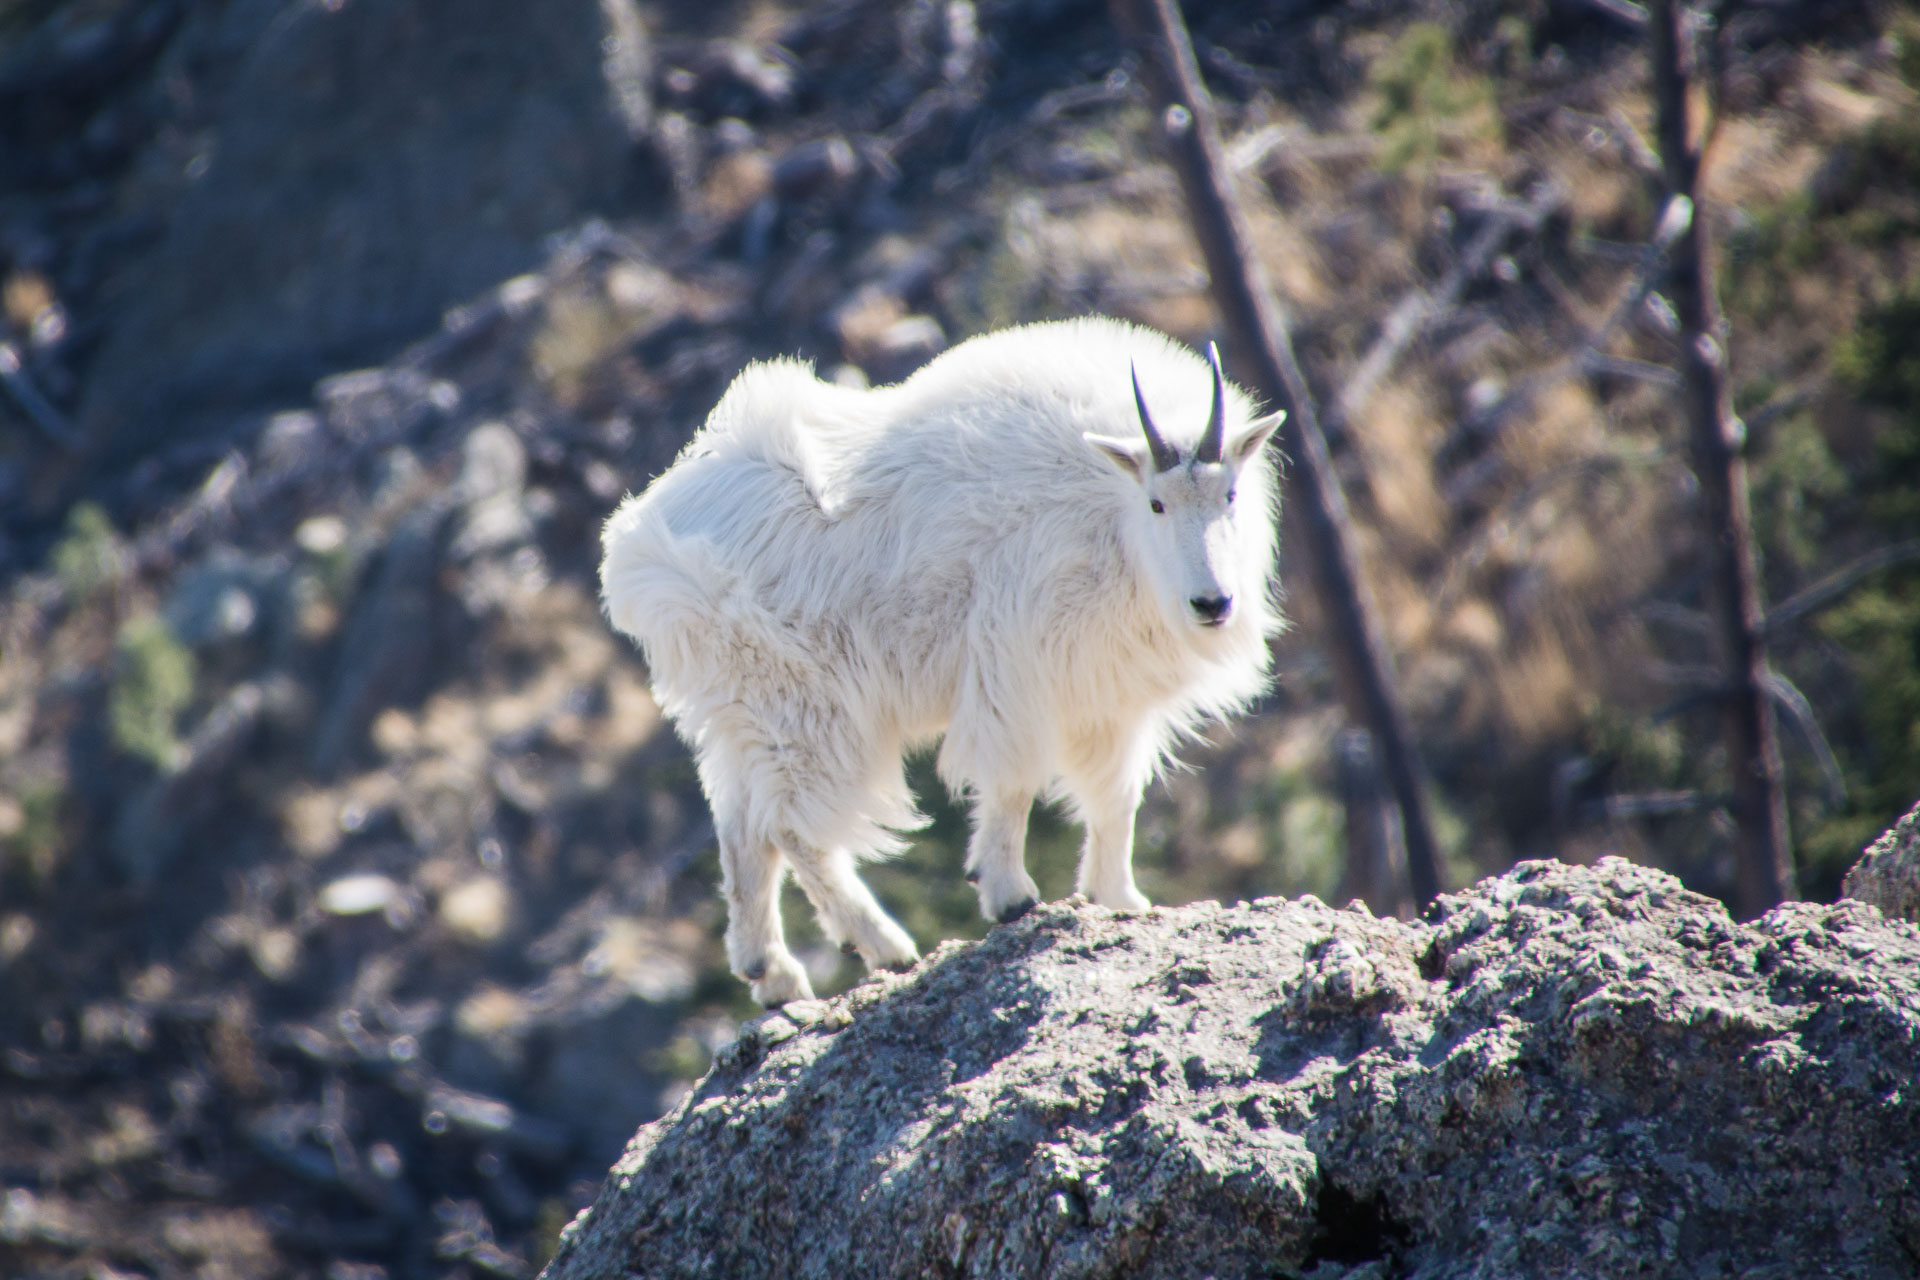 Mountain Goat in Custer State Park - Custer, South Dakota